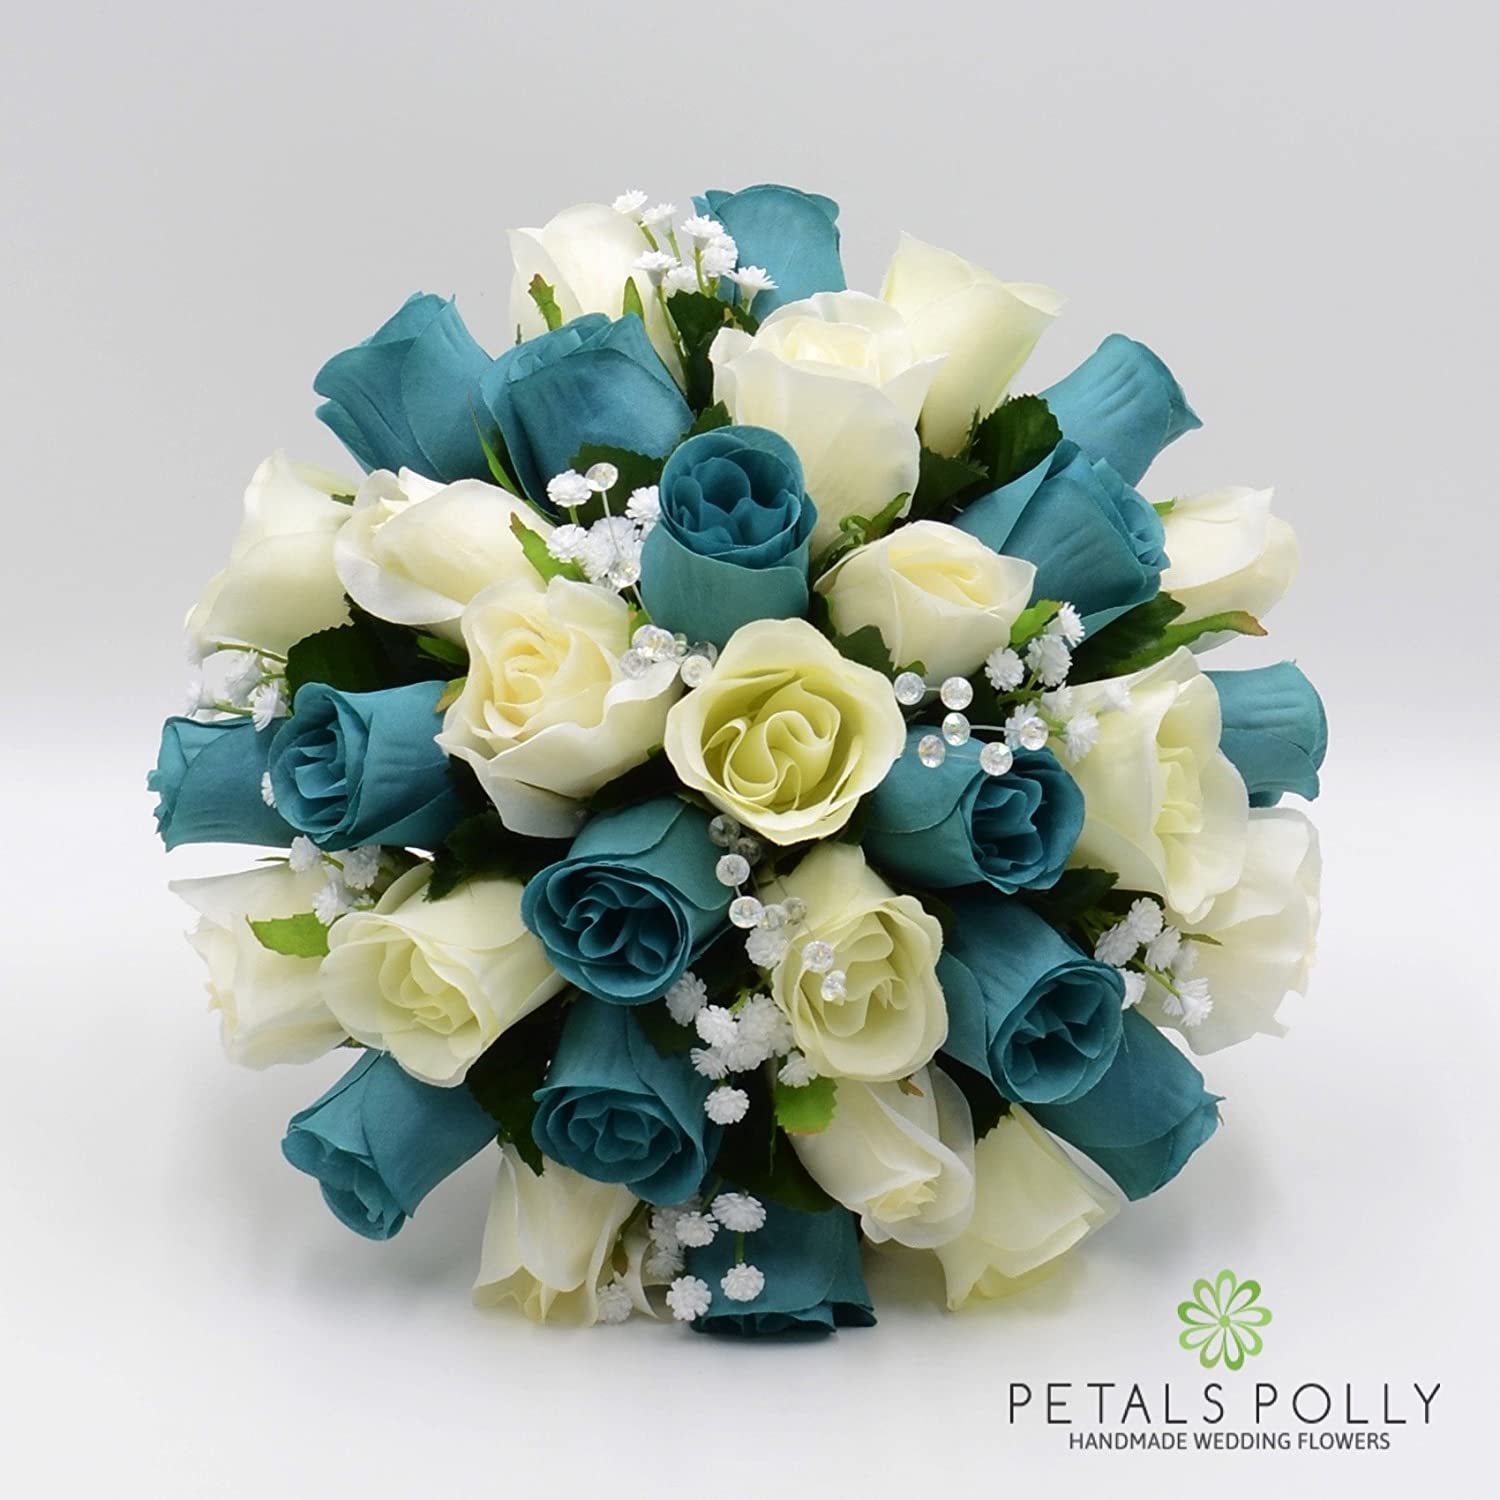 Silk Wedding Flowers Hand Made By Petals Polly Brides Bouquet